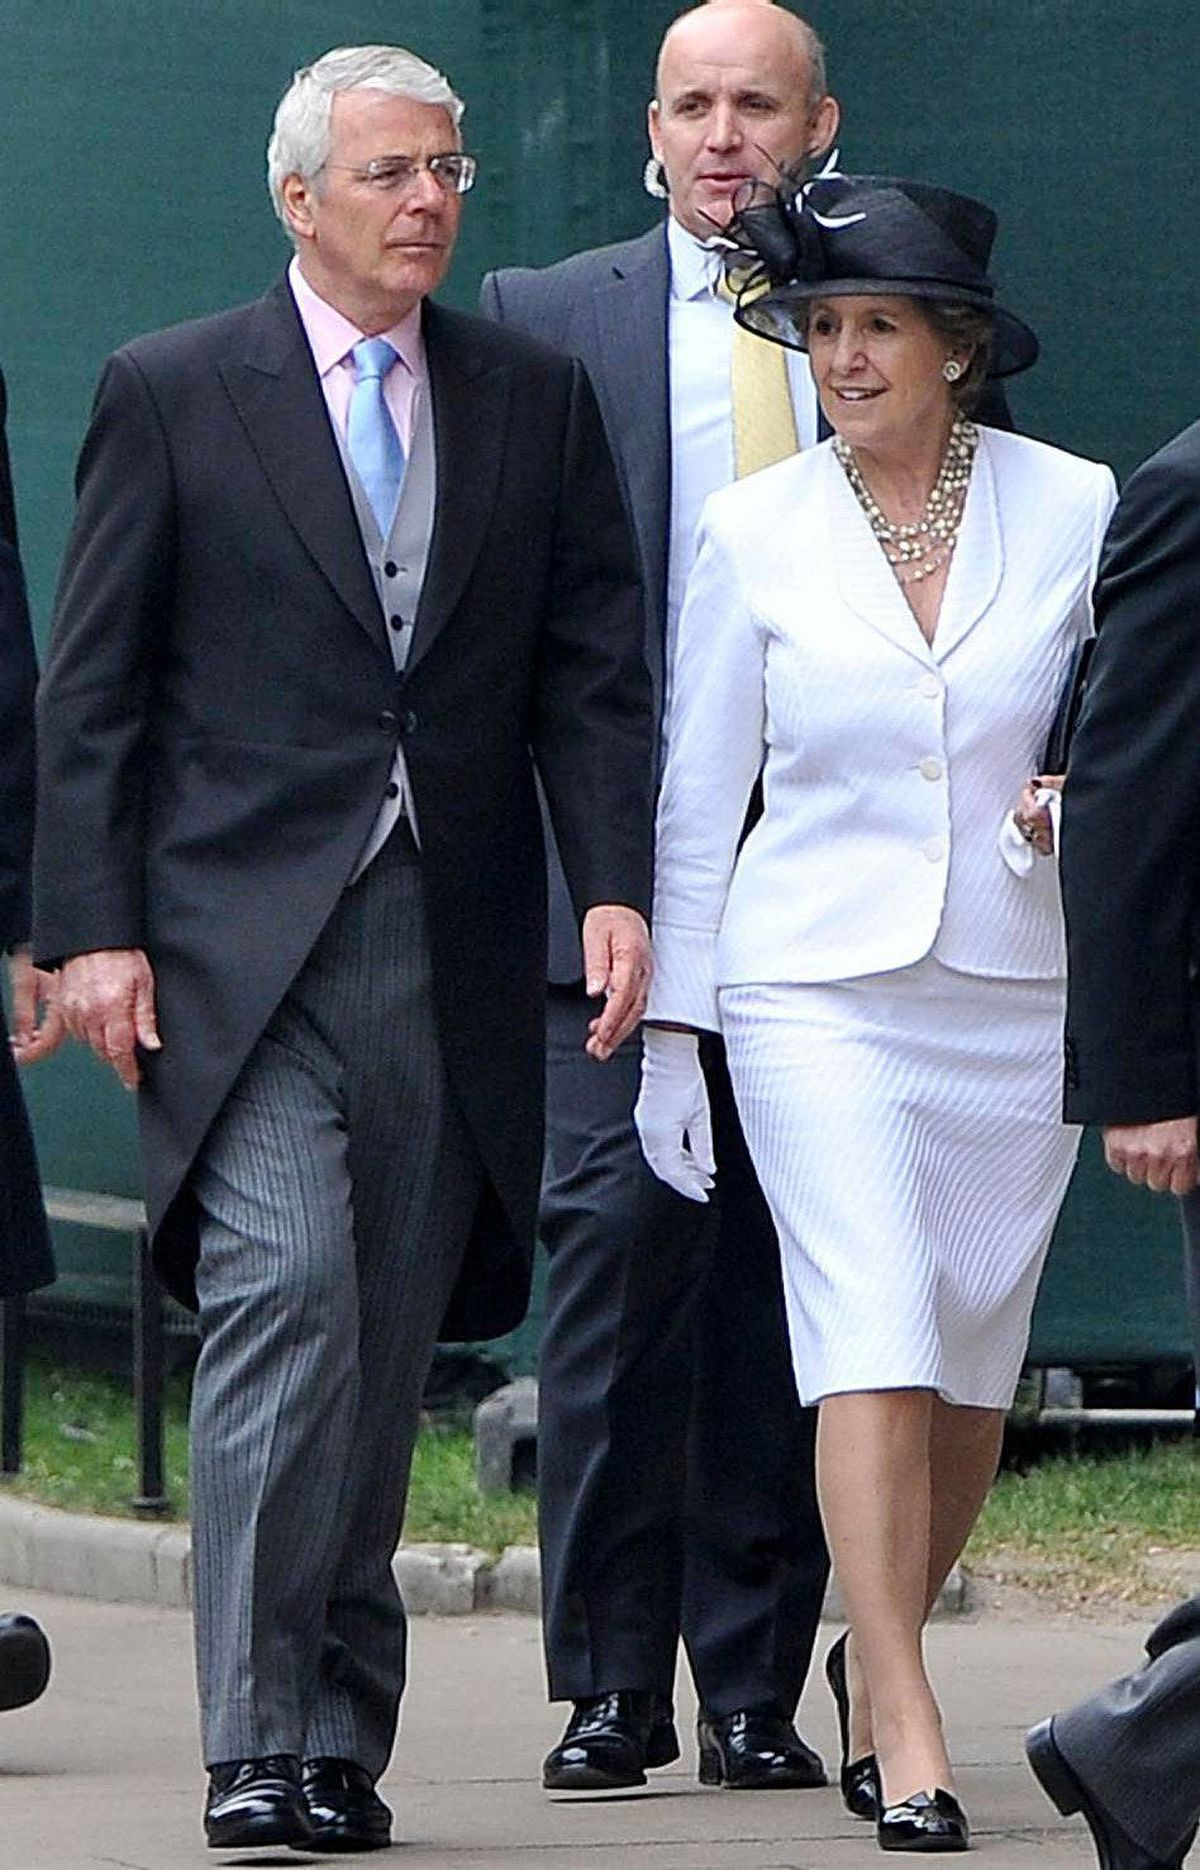 Former British Prime Minister John Major and Norma Major arrive to attend the Royal Wedding of Prince William to Catherine Middleton at Westminster Abbey on April 29, 2011 in London, England.